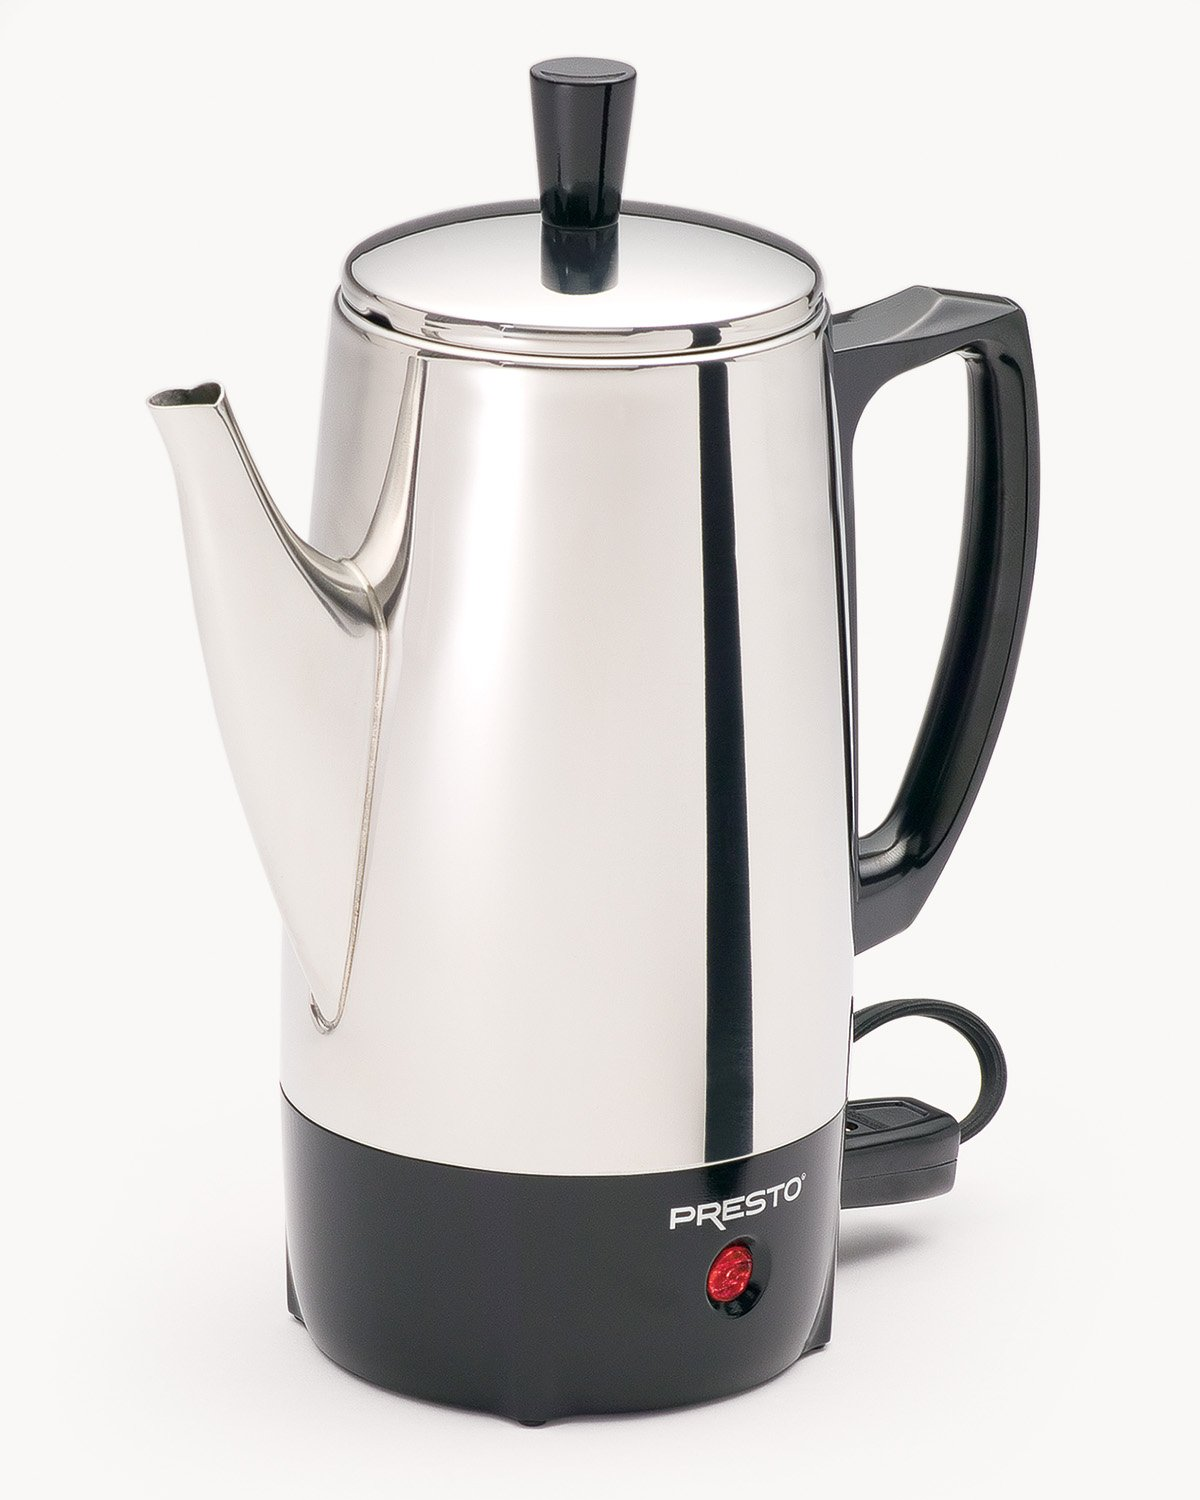 Coffee Maker With Percolator : Presto 02822 6-Cup Stainless-Steel Coffee Percolator , New, Free Shipping 75741028224 eBay